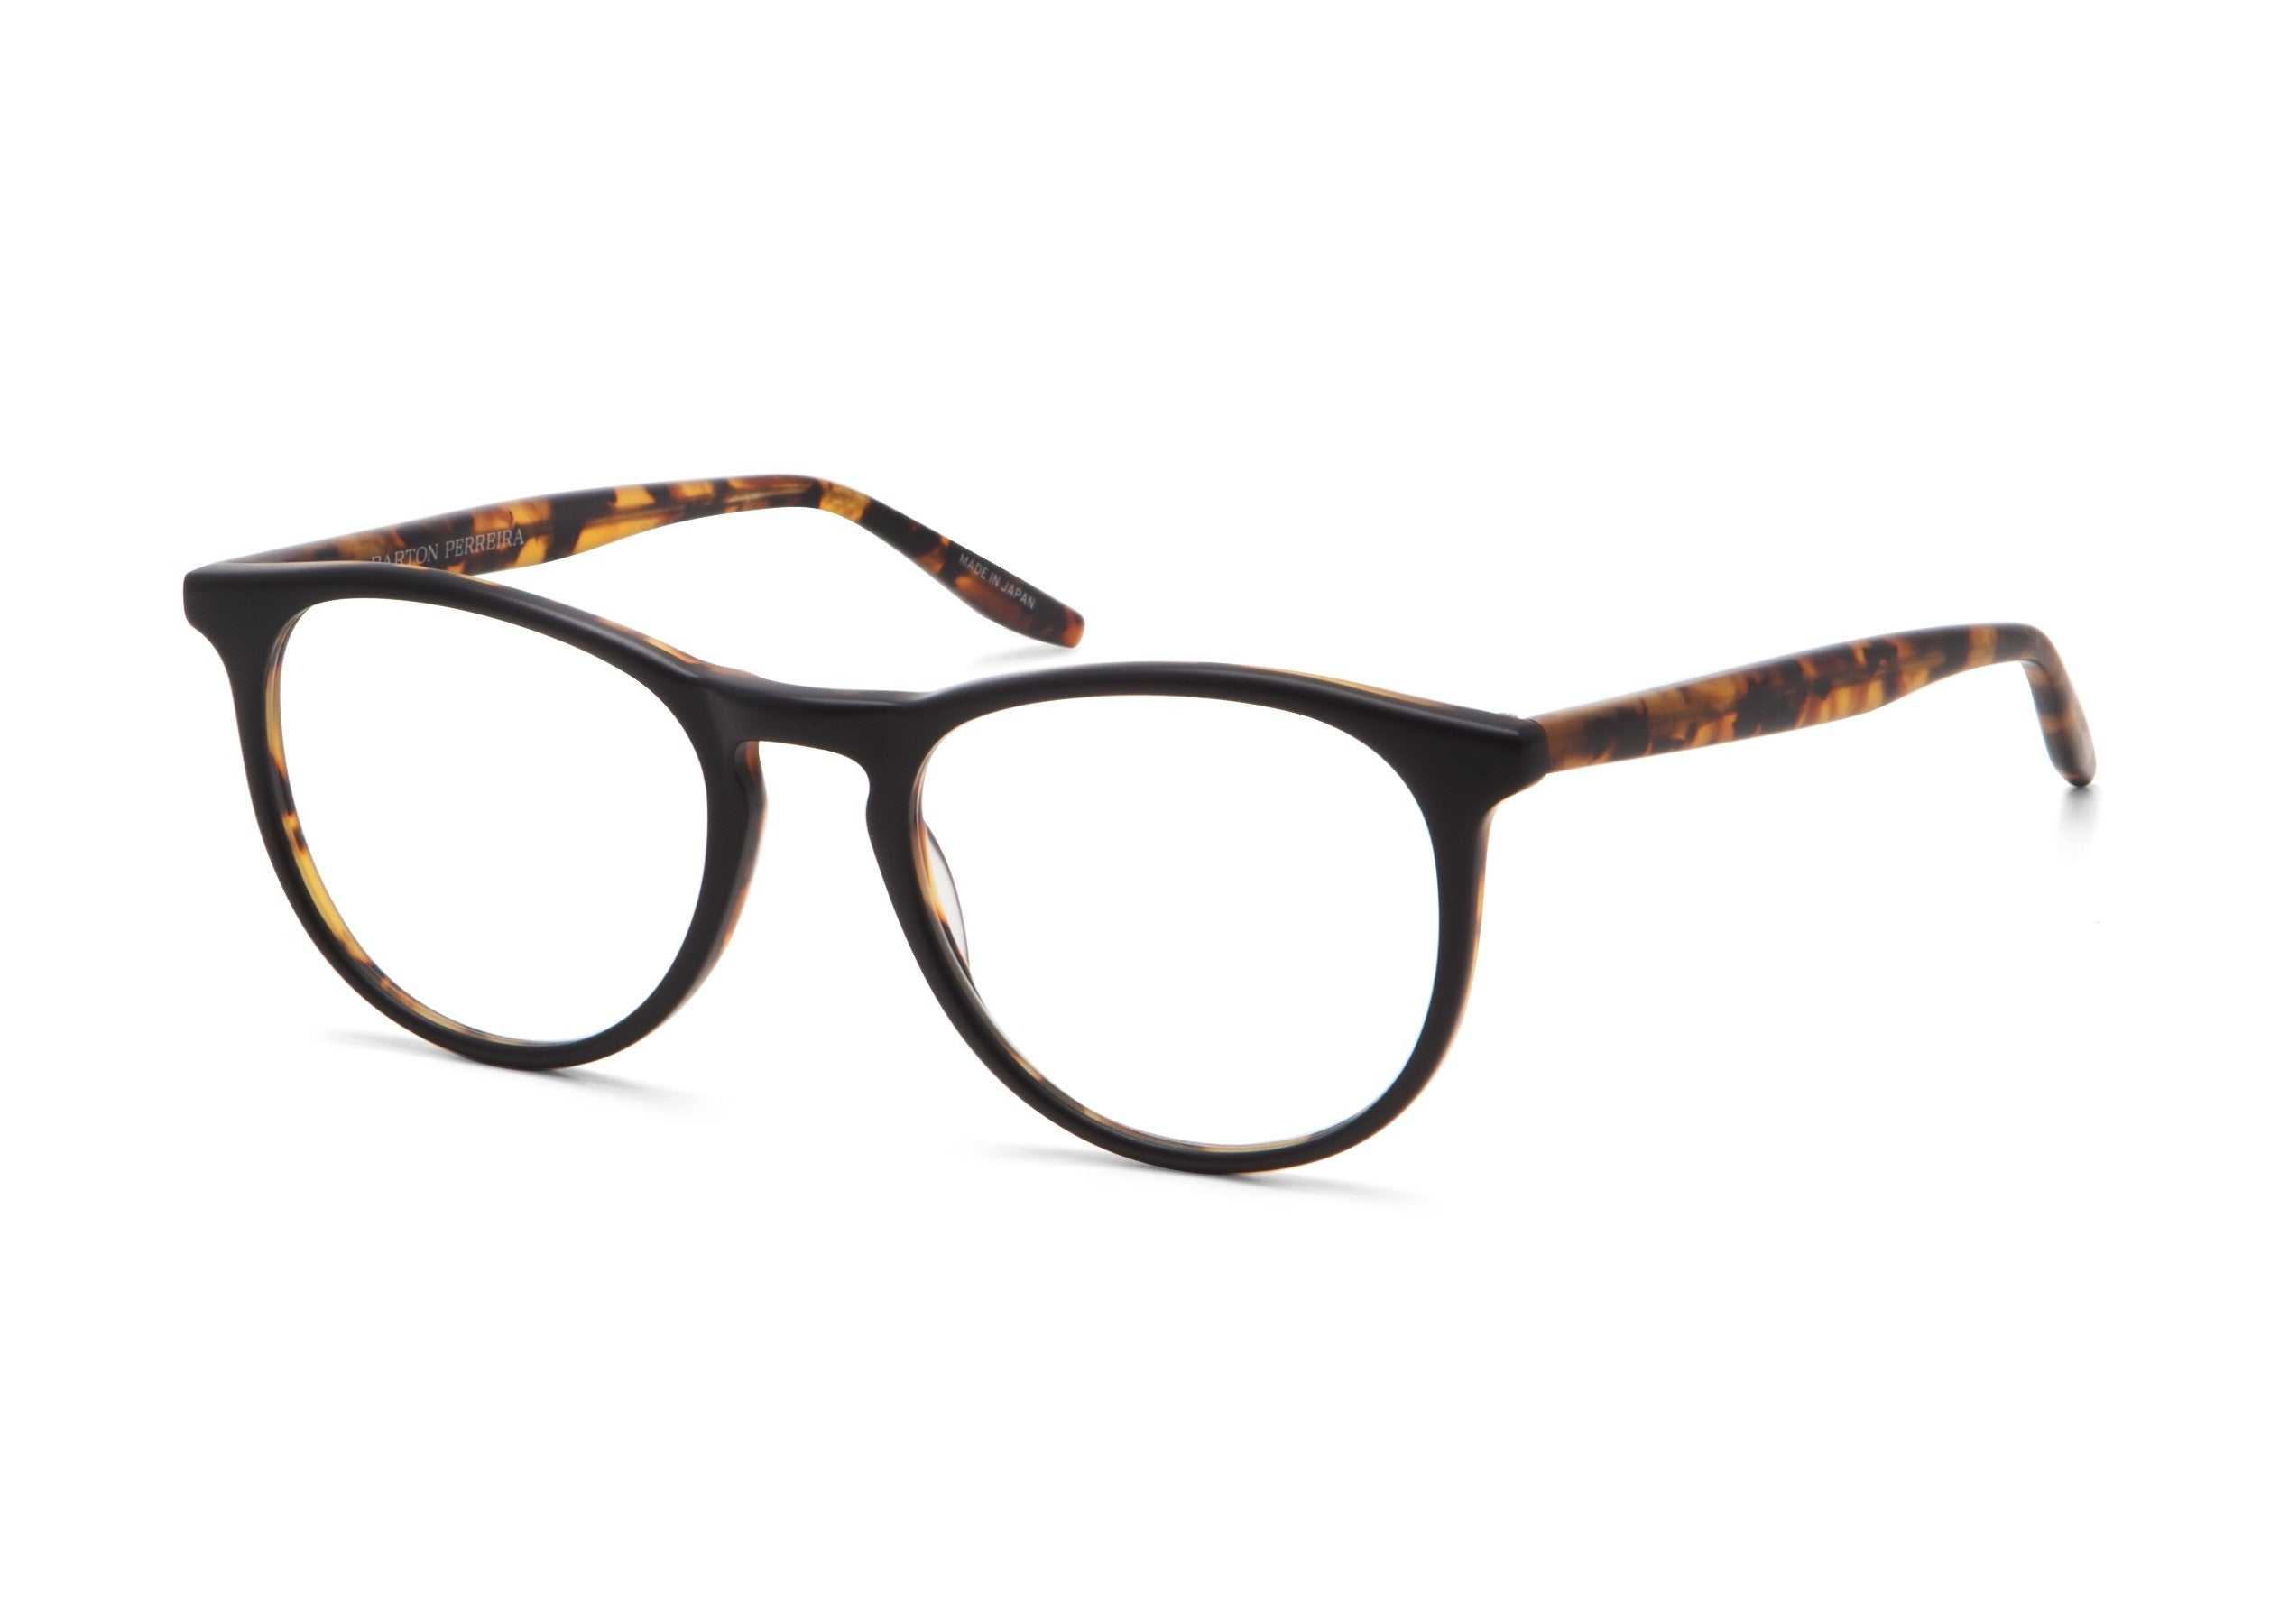 8bcee48677 barton-perreira-finn-prescription-glasses-seattle-sunglass-company